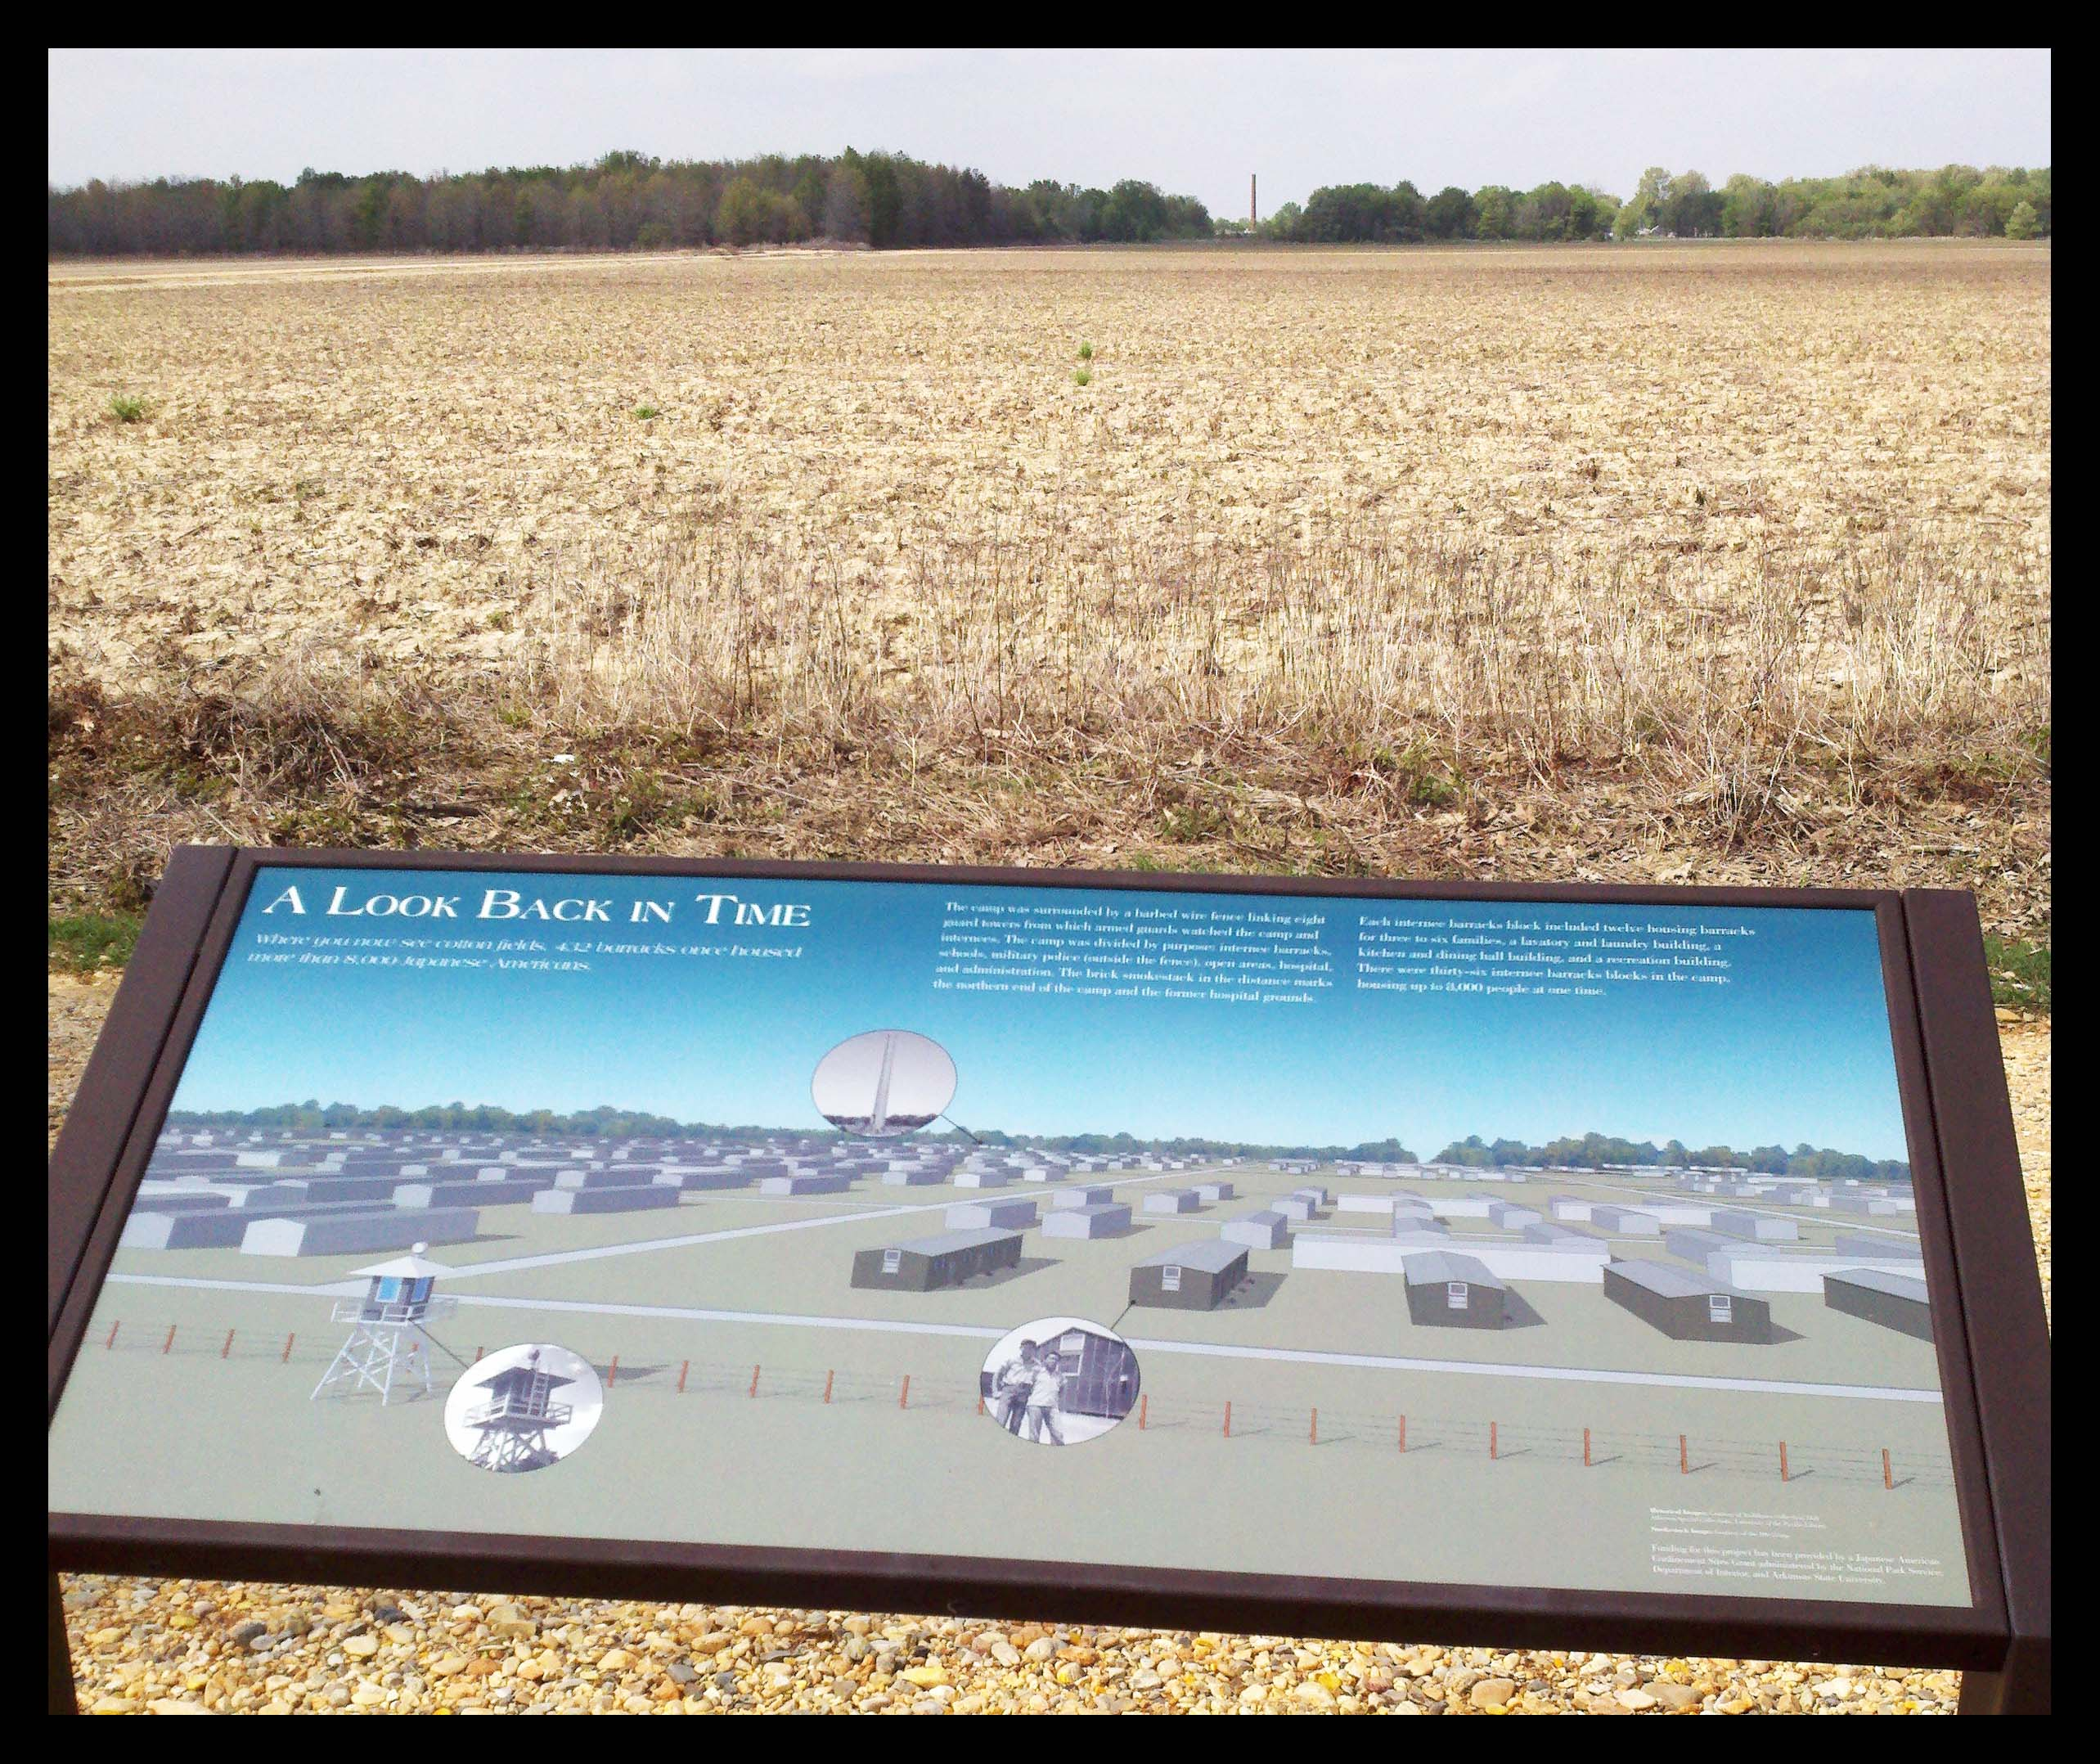 Interpretive panel with hospital smokestack in the distance.